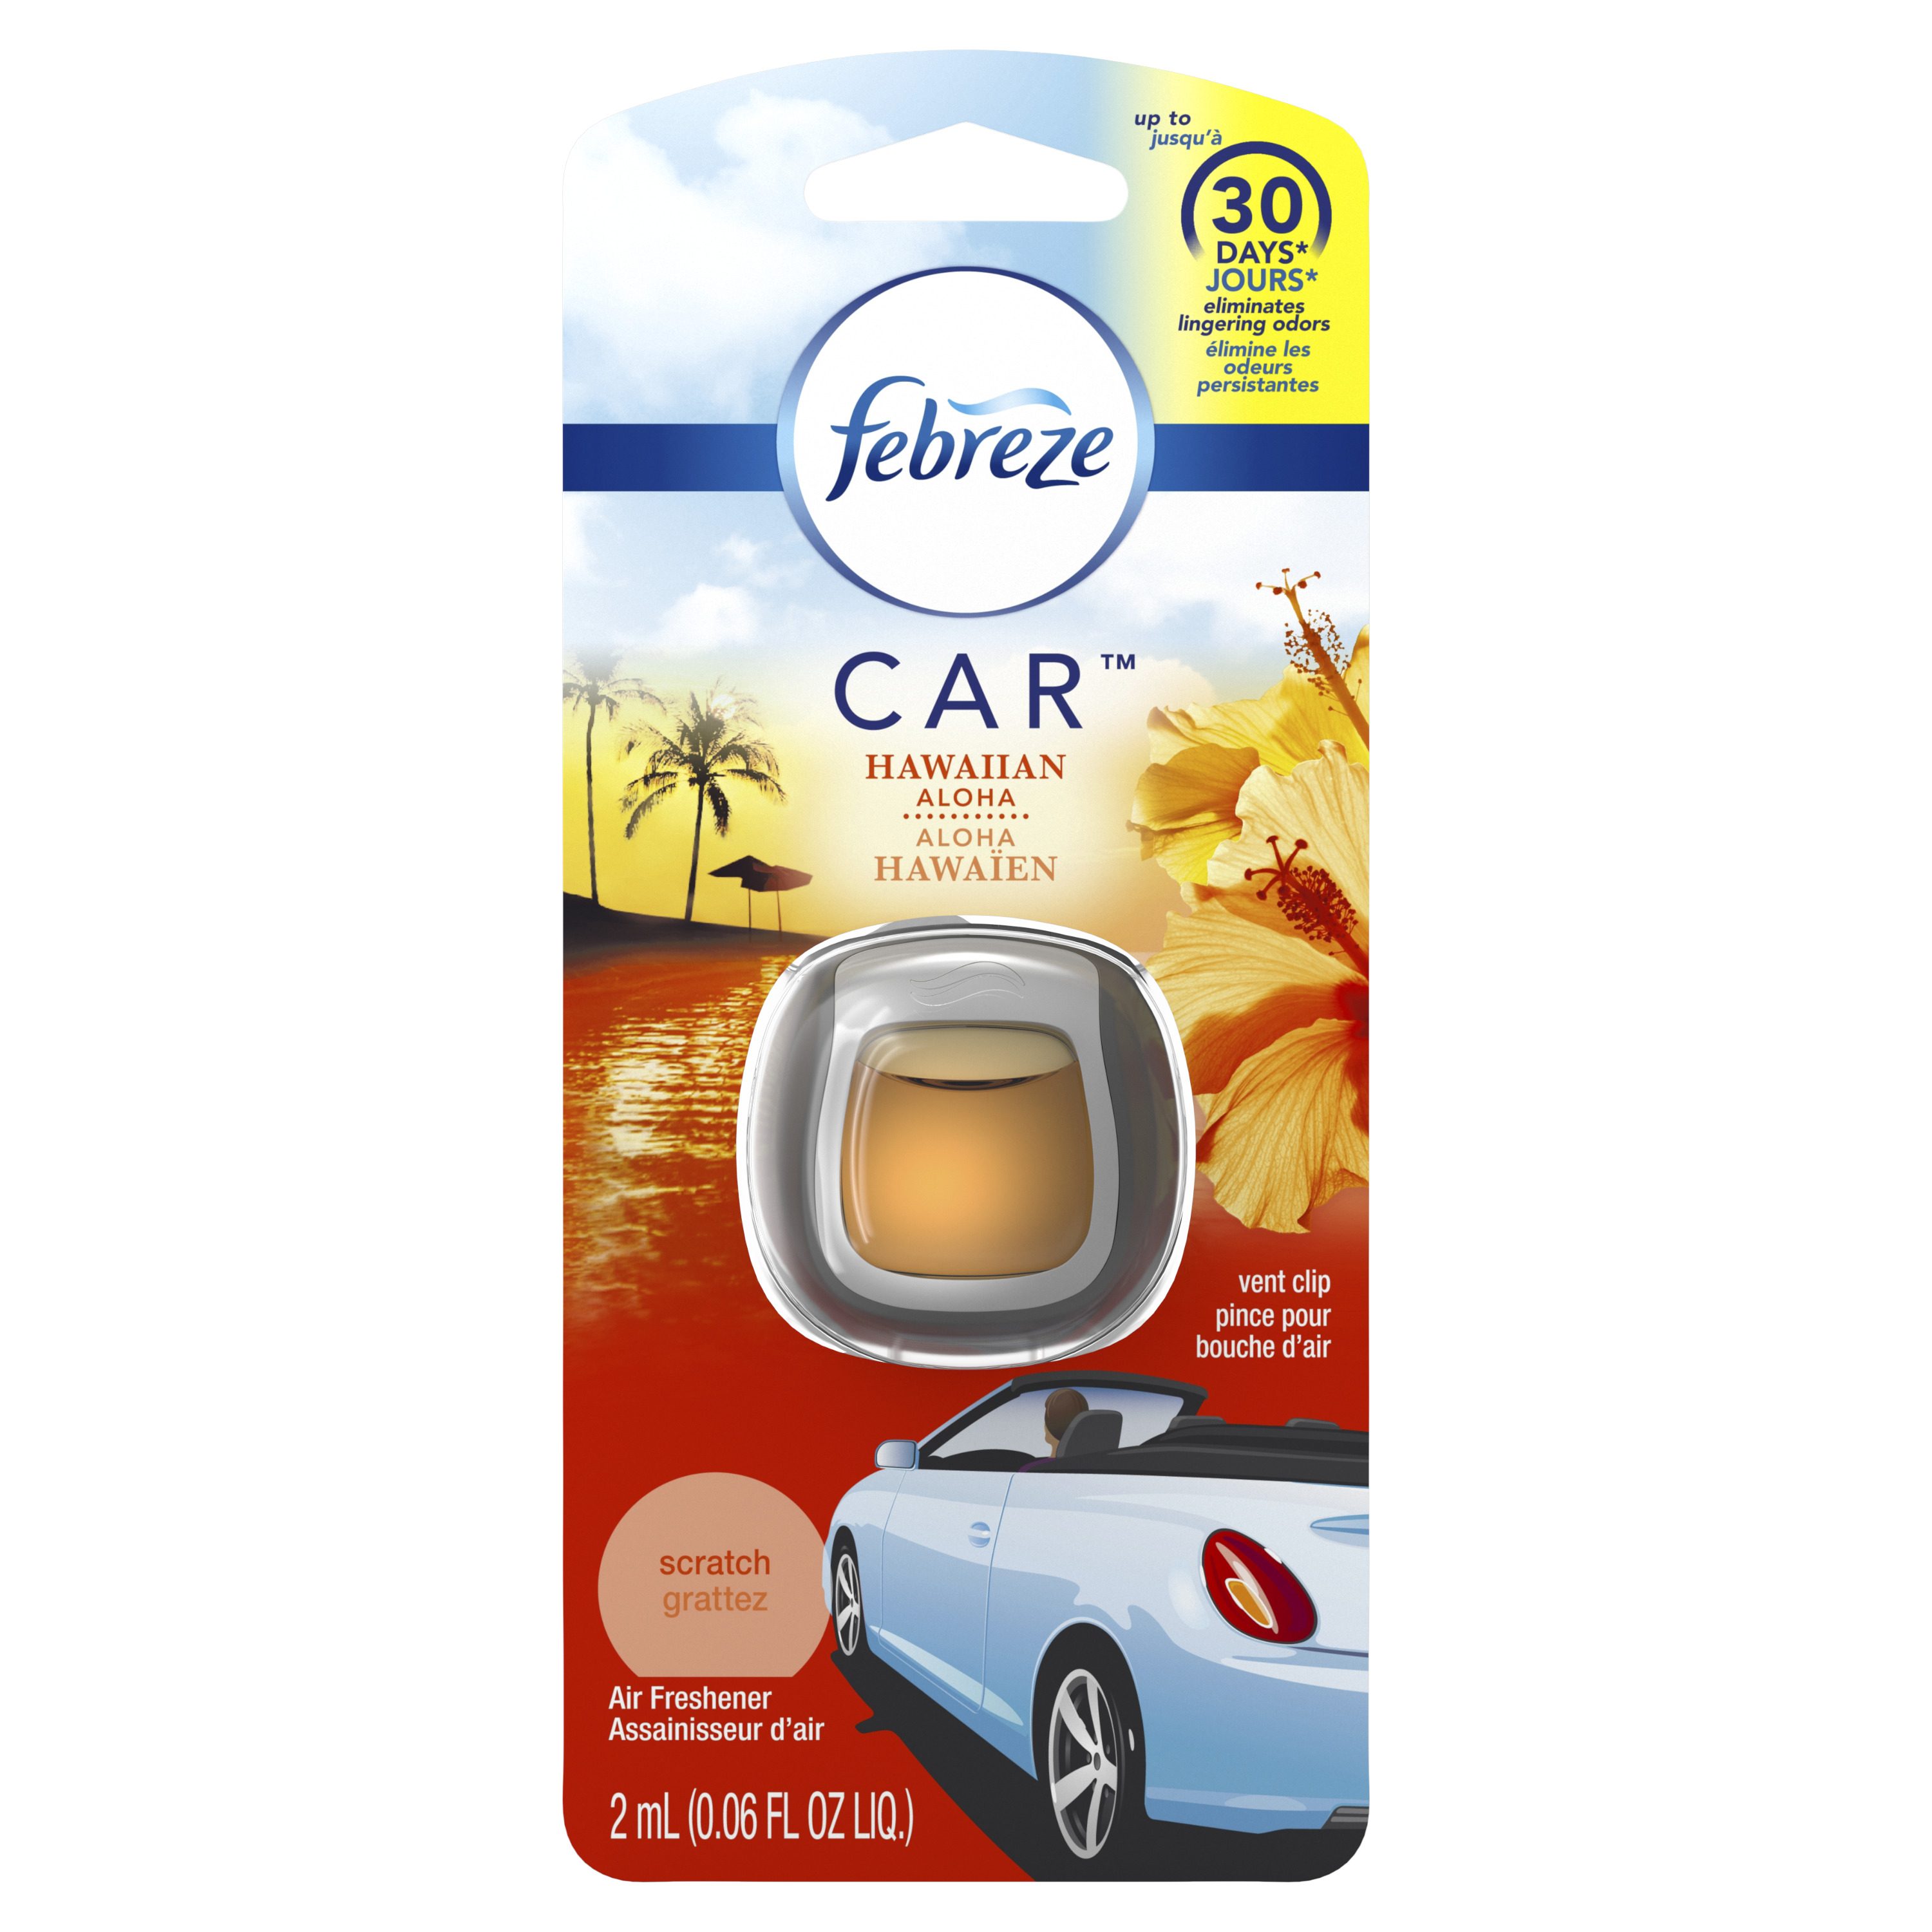 Febreze Car Air Freshener Vent Clip, Hawaiian Aloha, 1 Count